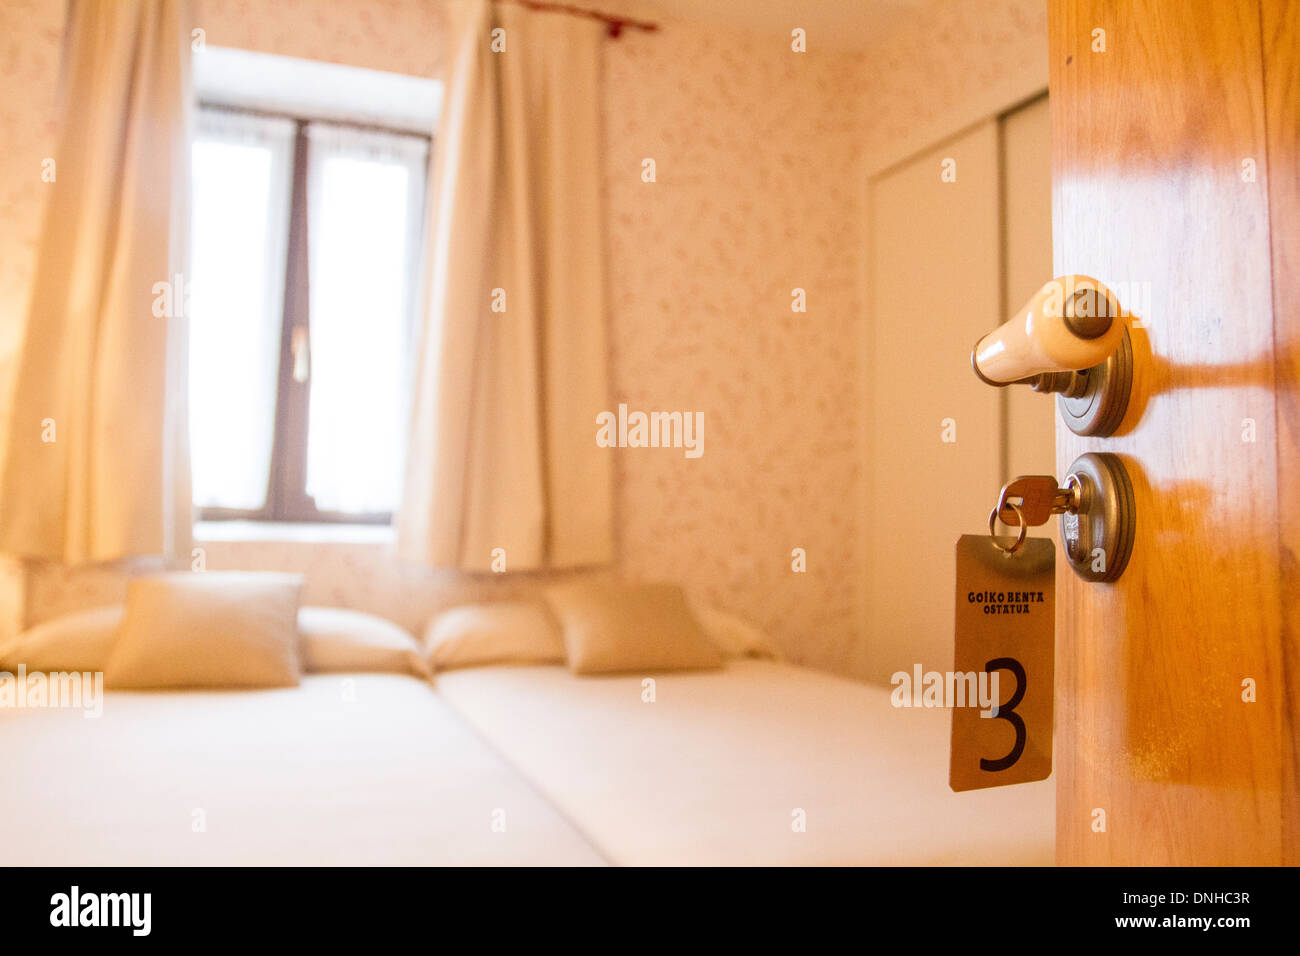 Bedroom in a hotel - Stock Image